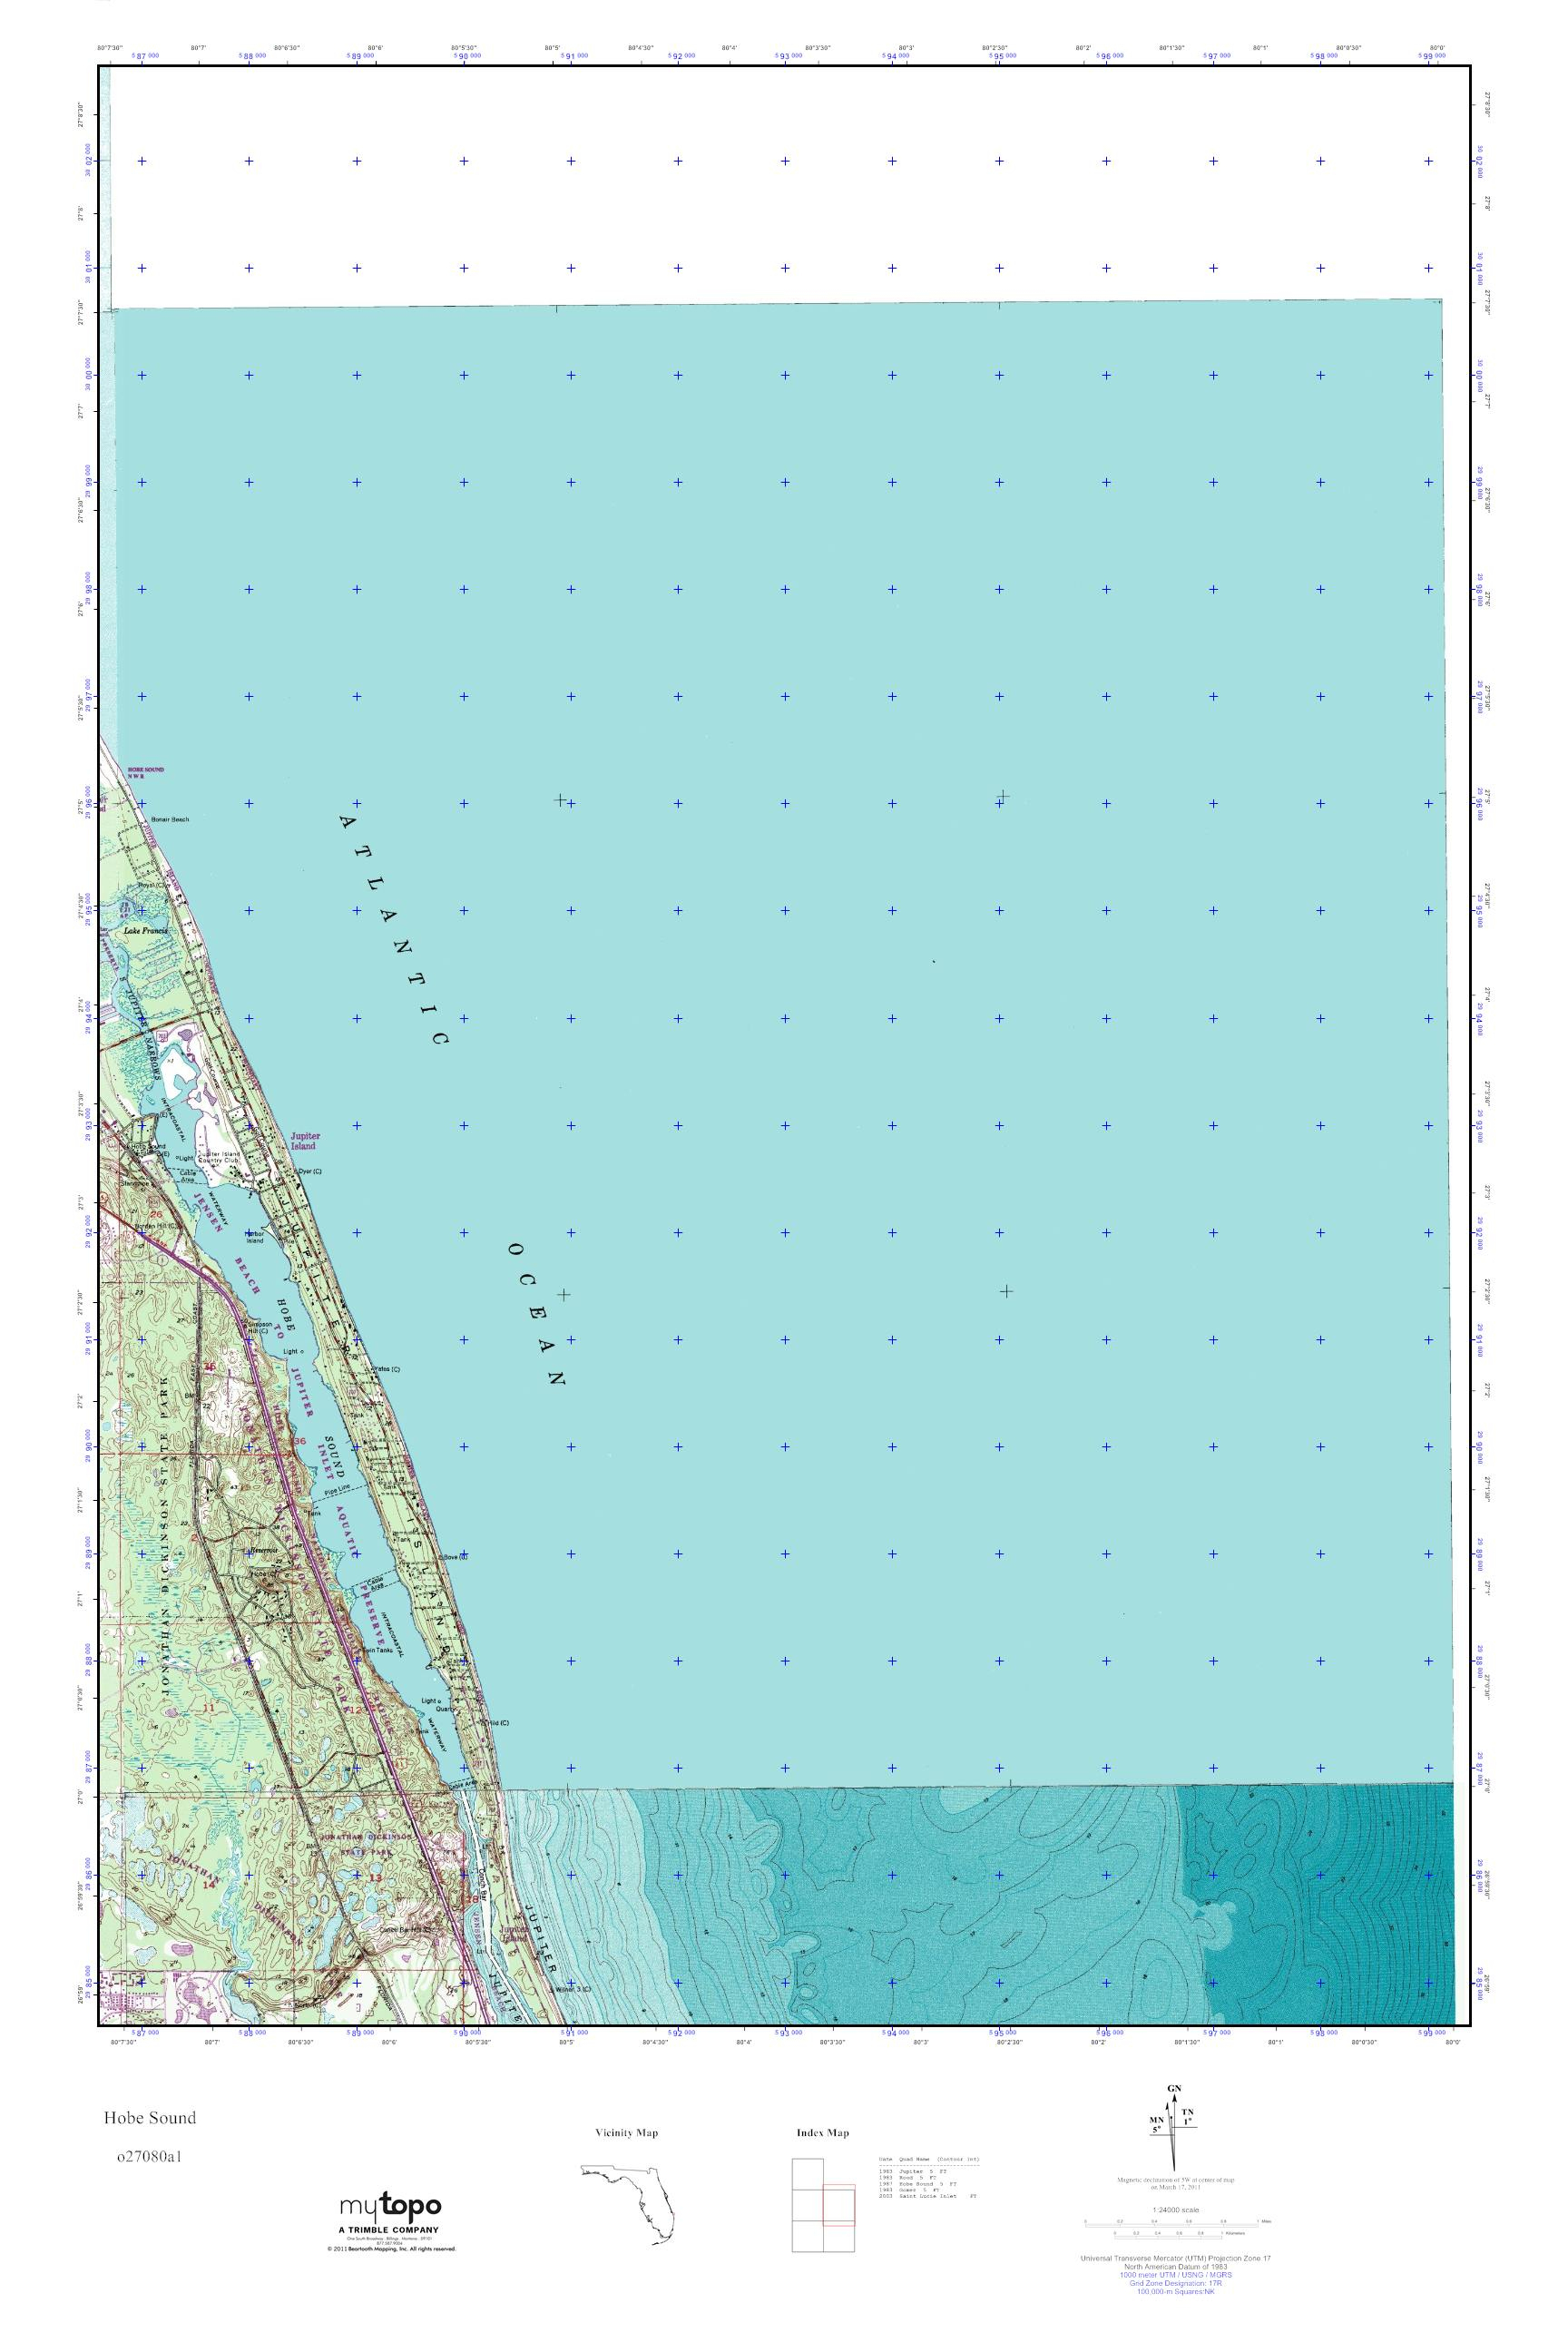 Mytopo Hobe Sound, Florida Usgs Quad Topo Map - Map Of Florida Showing Hobe Sound